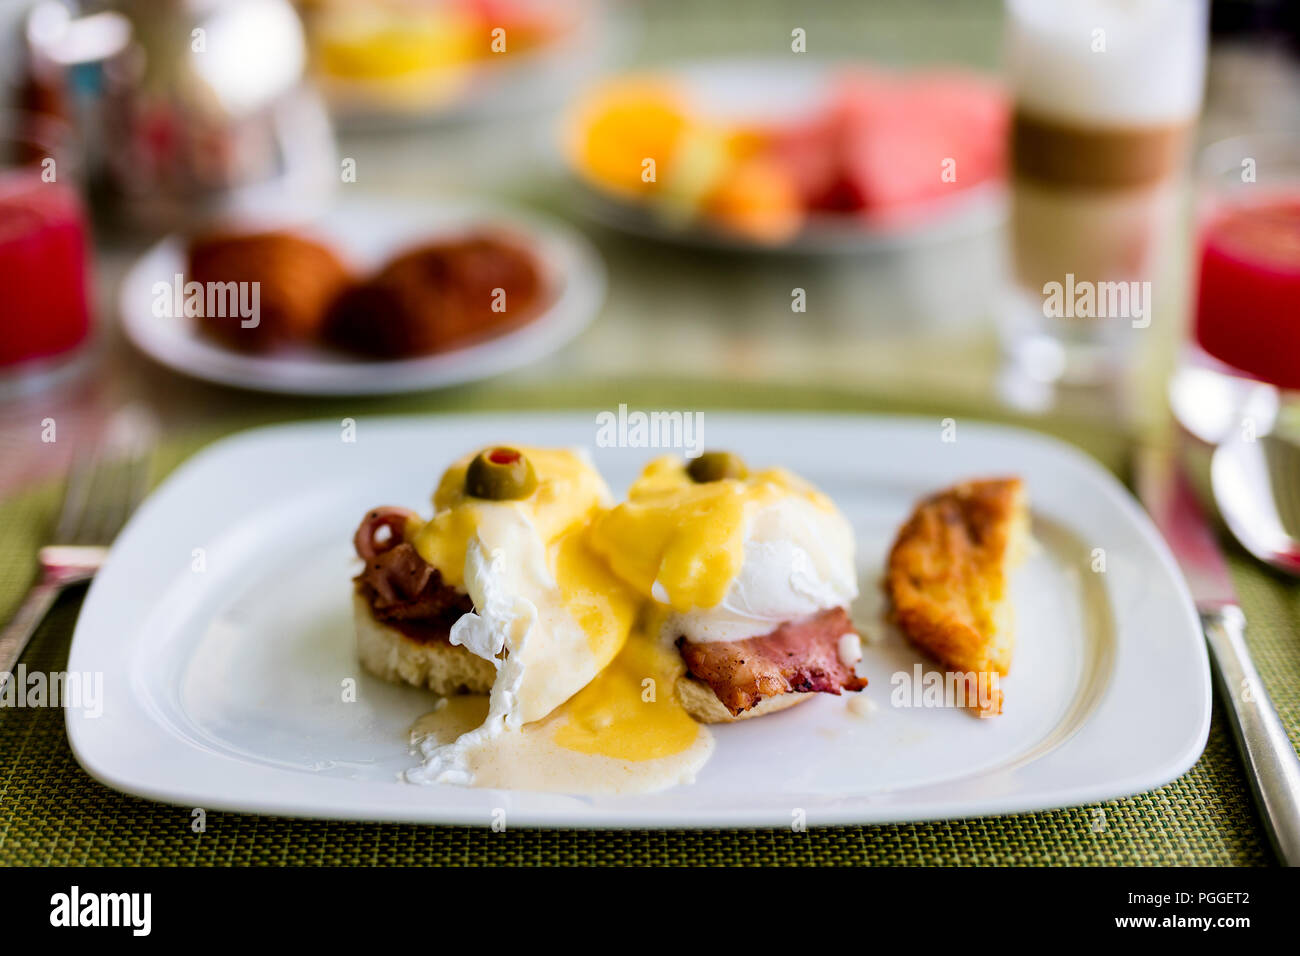 Delicious breakfast with eggs Benedict and coffee - Stock Image